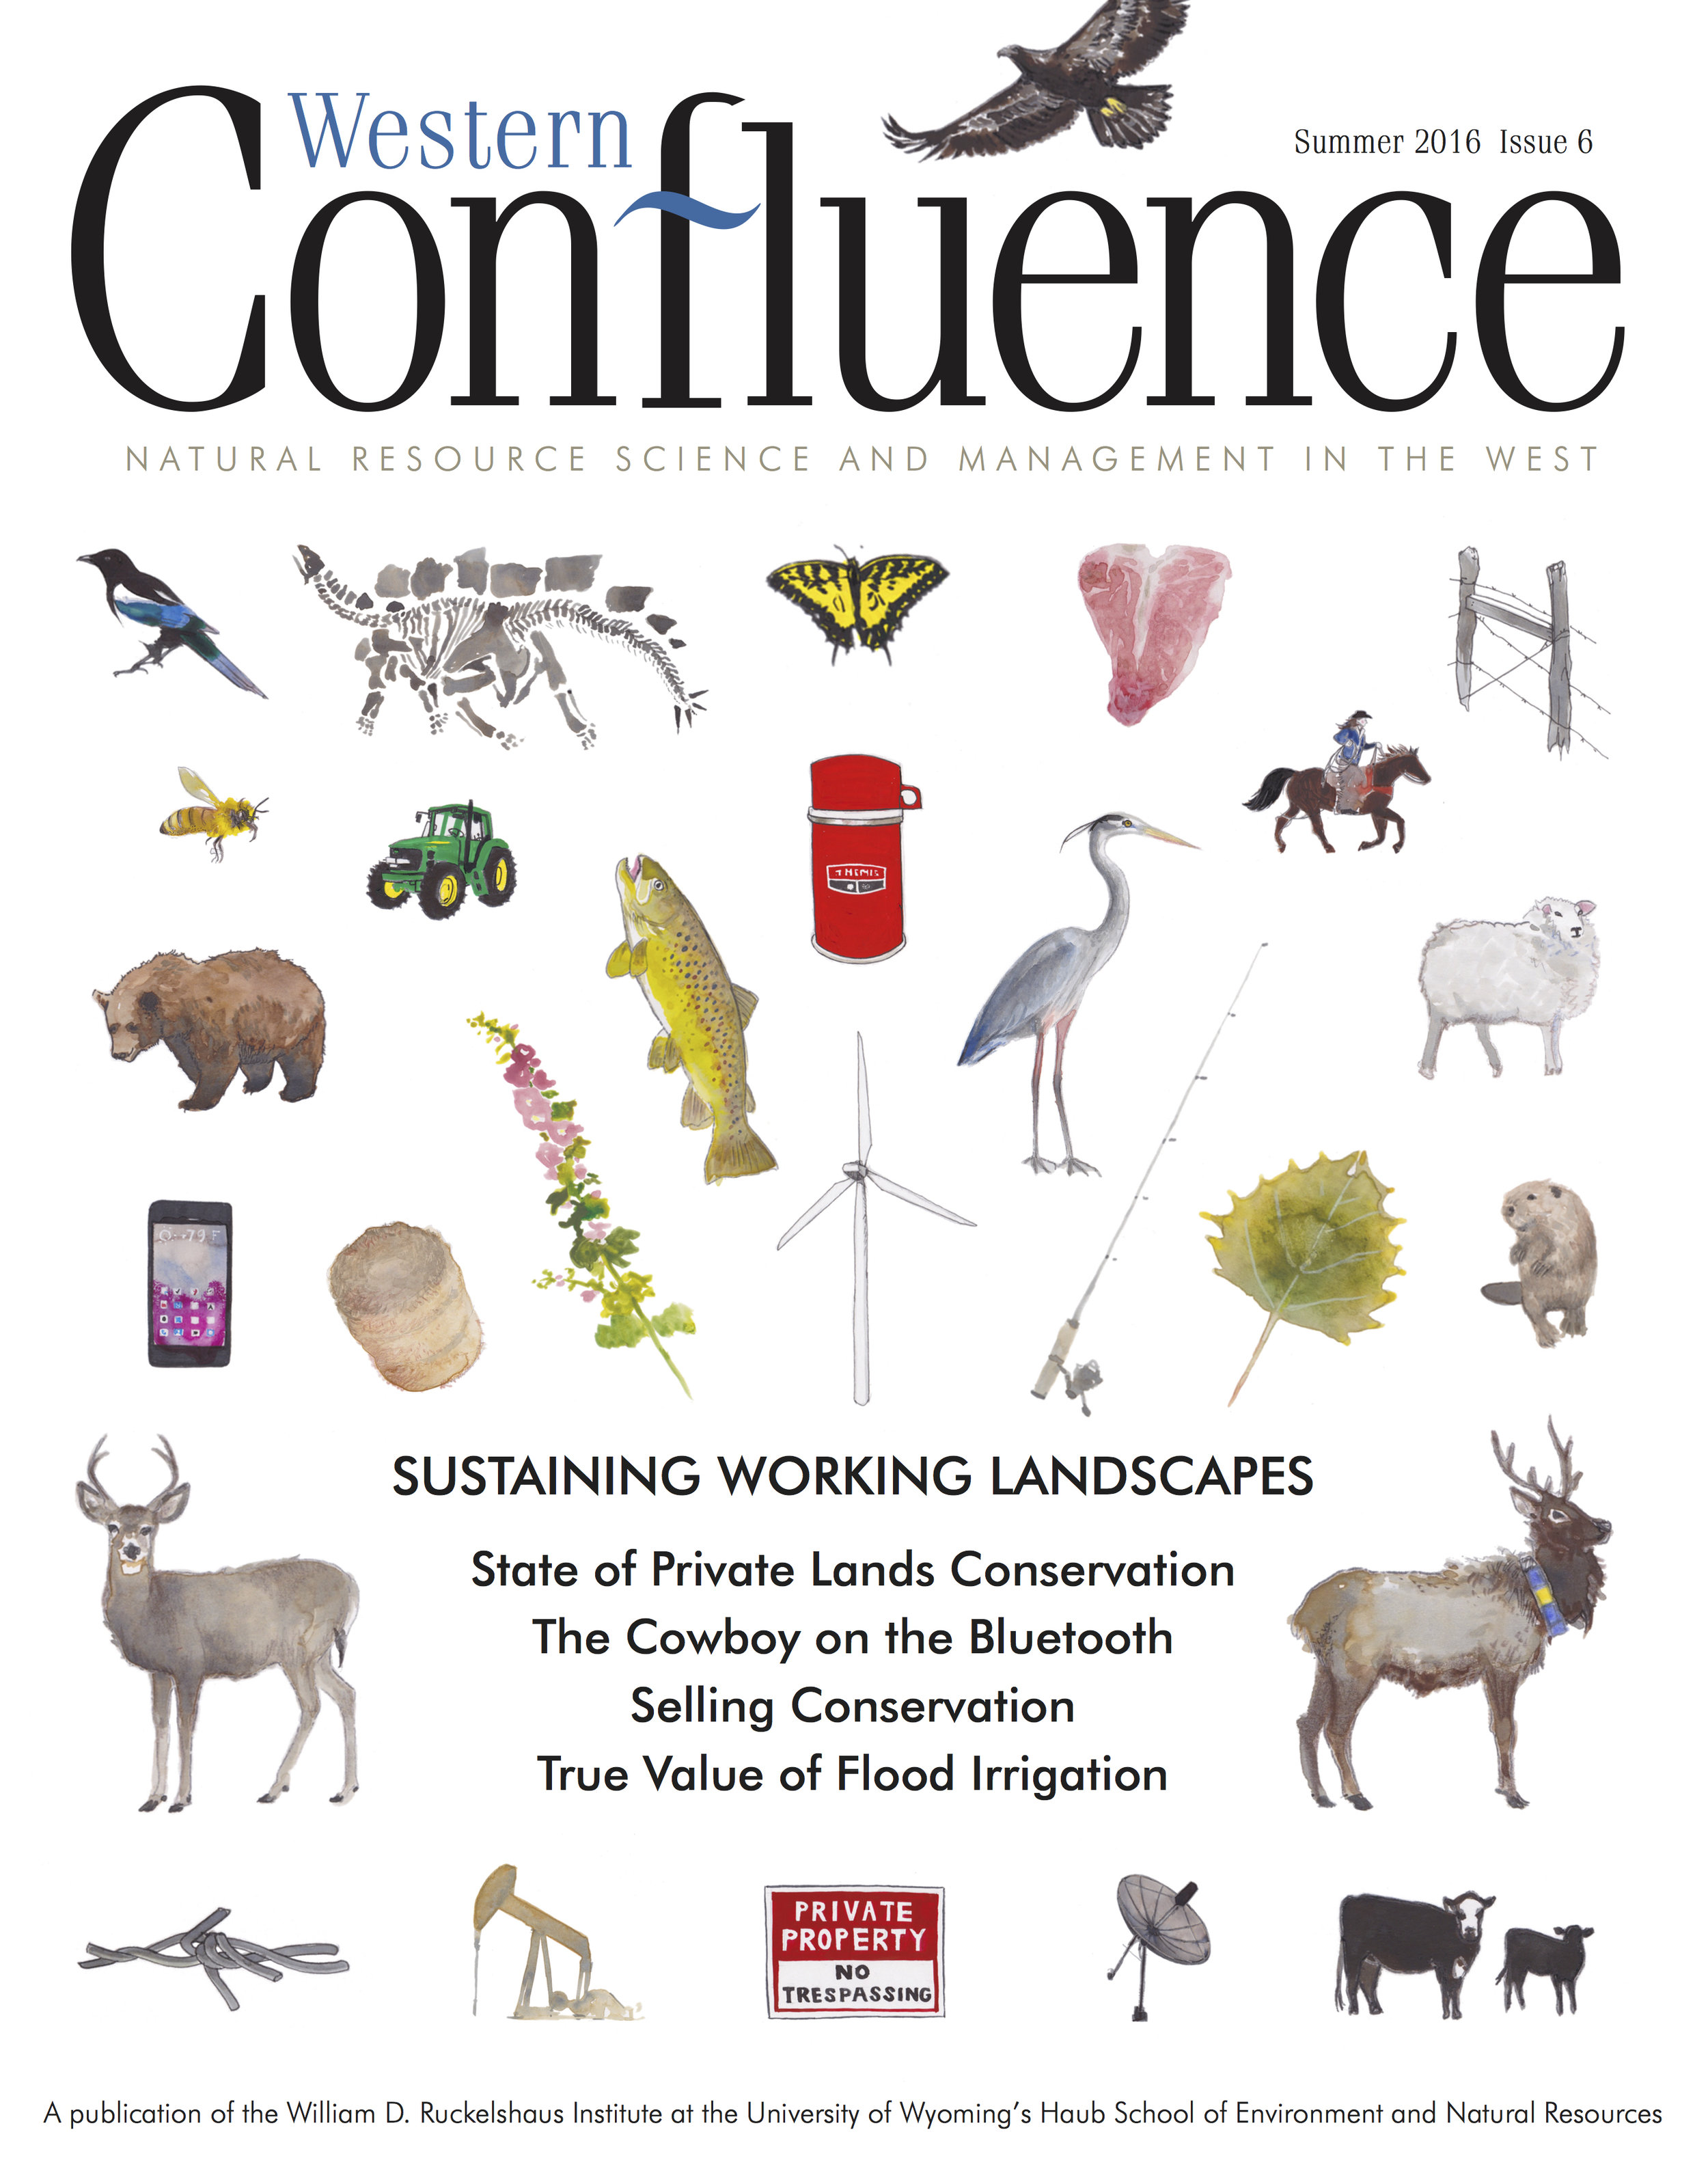 WESTERN CONFLUENCE SUMMER 2016 ISSUE 6  WILLIAM D. RUCKELSHAUS INSTITUTE OF THE UNIVERSITY OF WYOMING'S HAUB SCHOOL OF ENVIRONMENT AND NATURAL RESOURCES